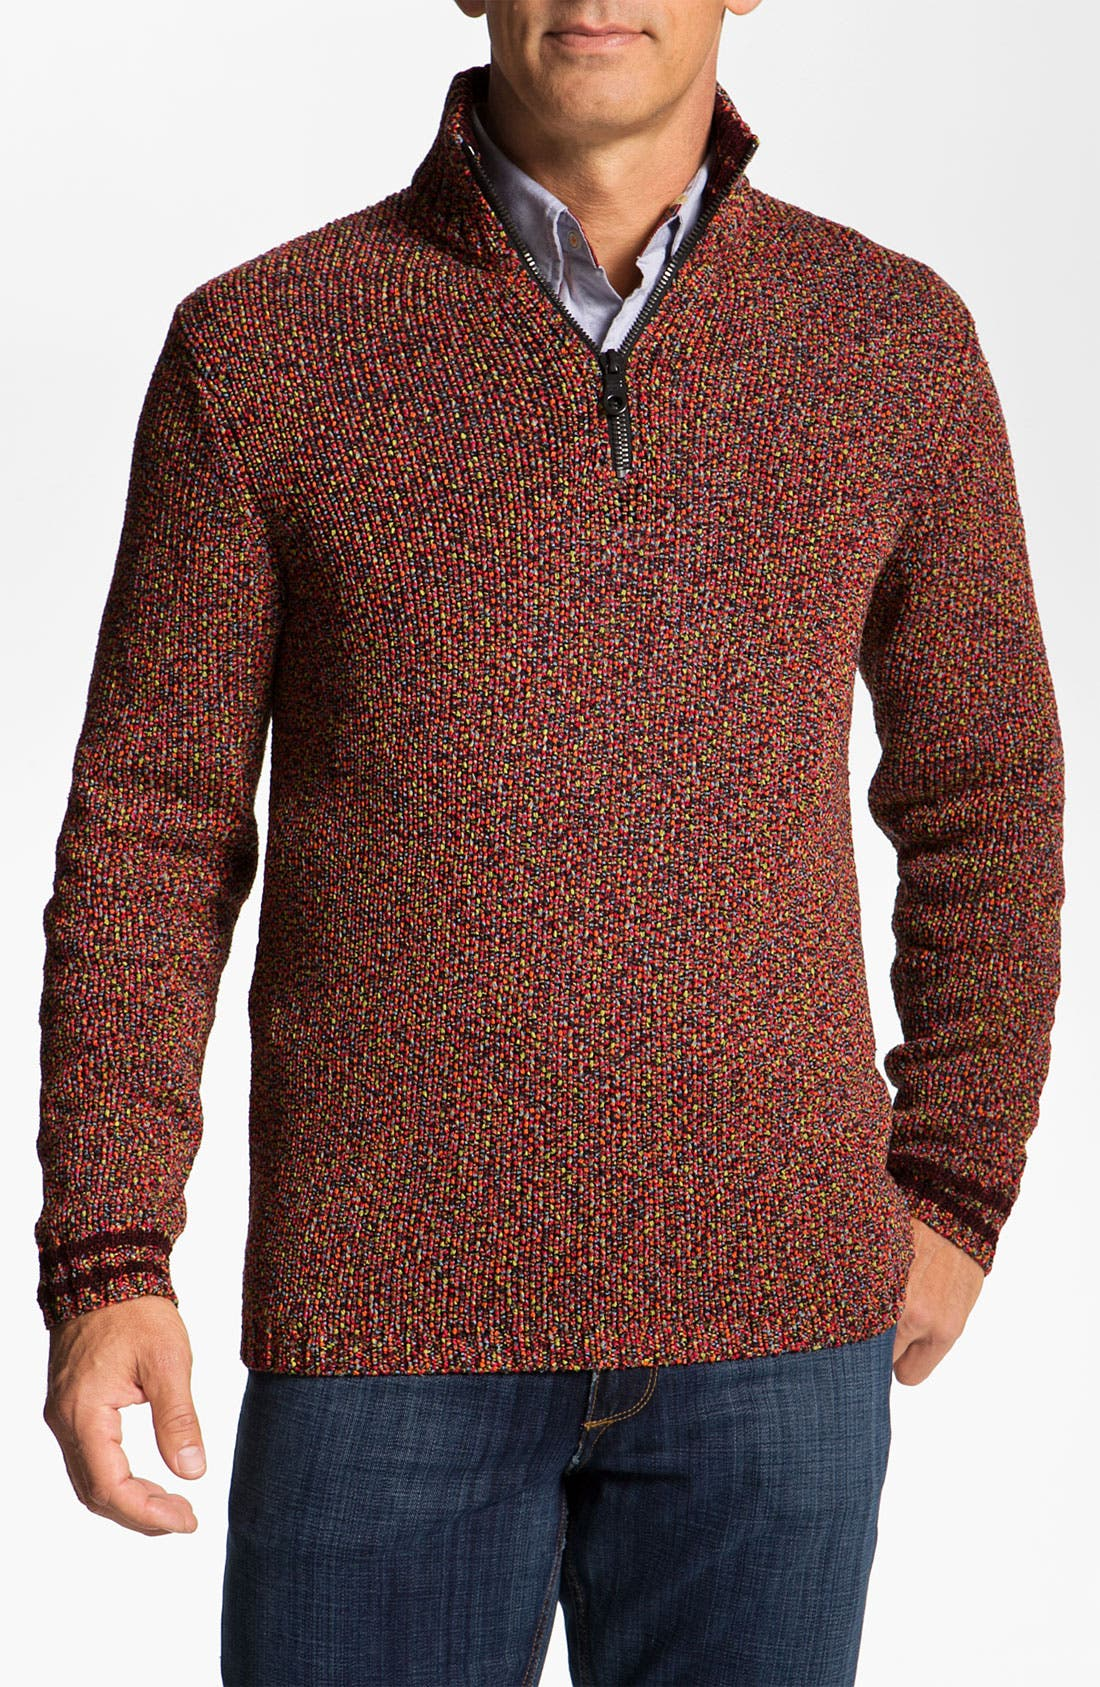 Alternate Image 1 Selected - Robert Graham 'Hastings' Quarter-Zip Sweater (Limited Edition)